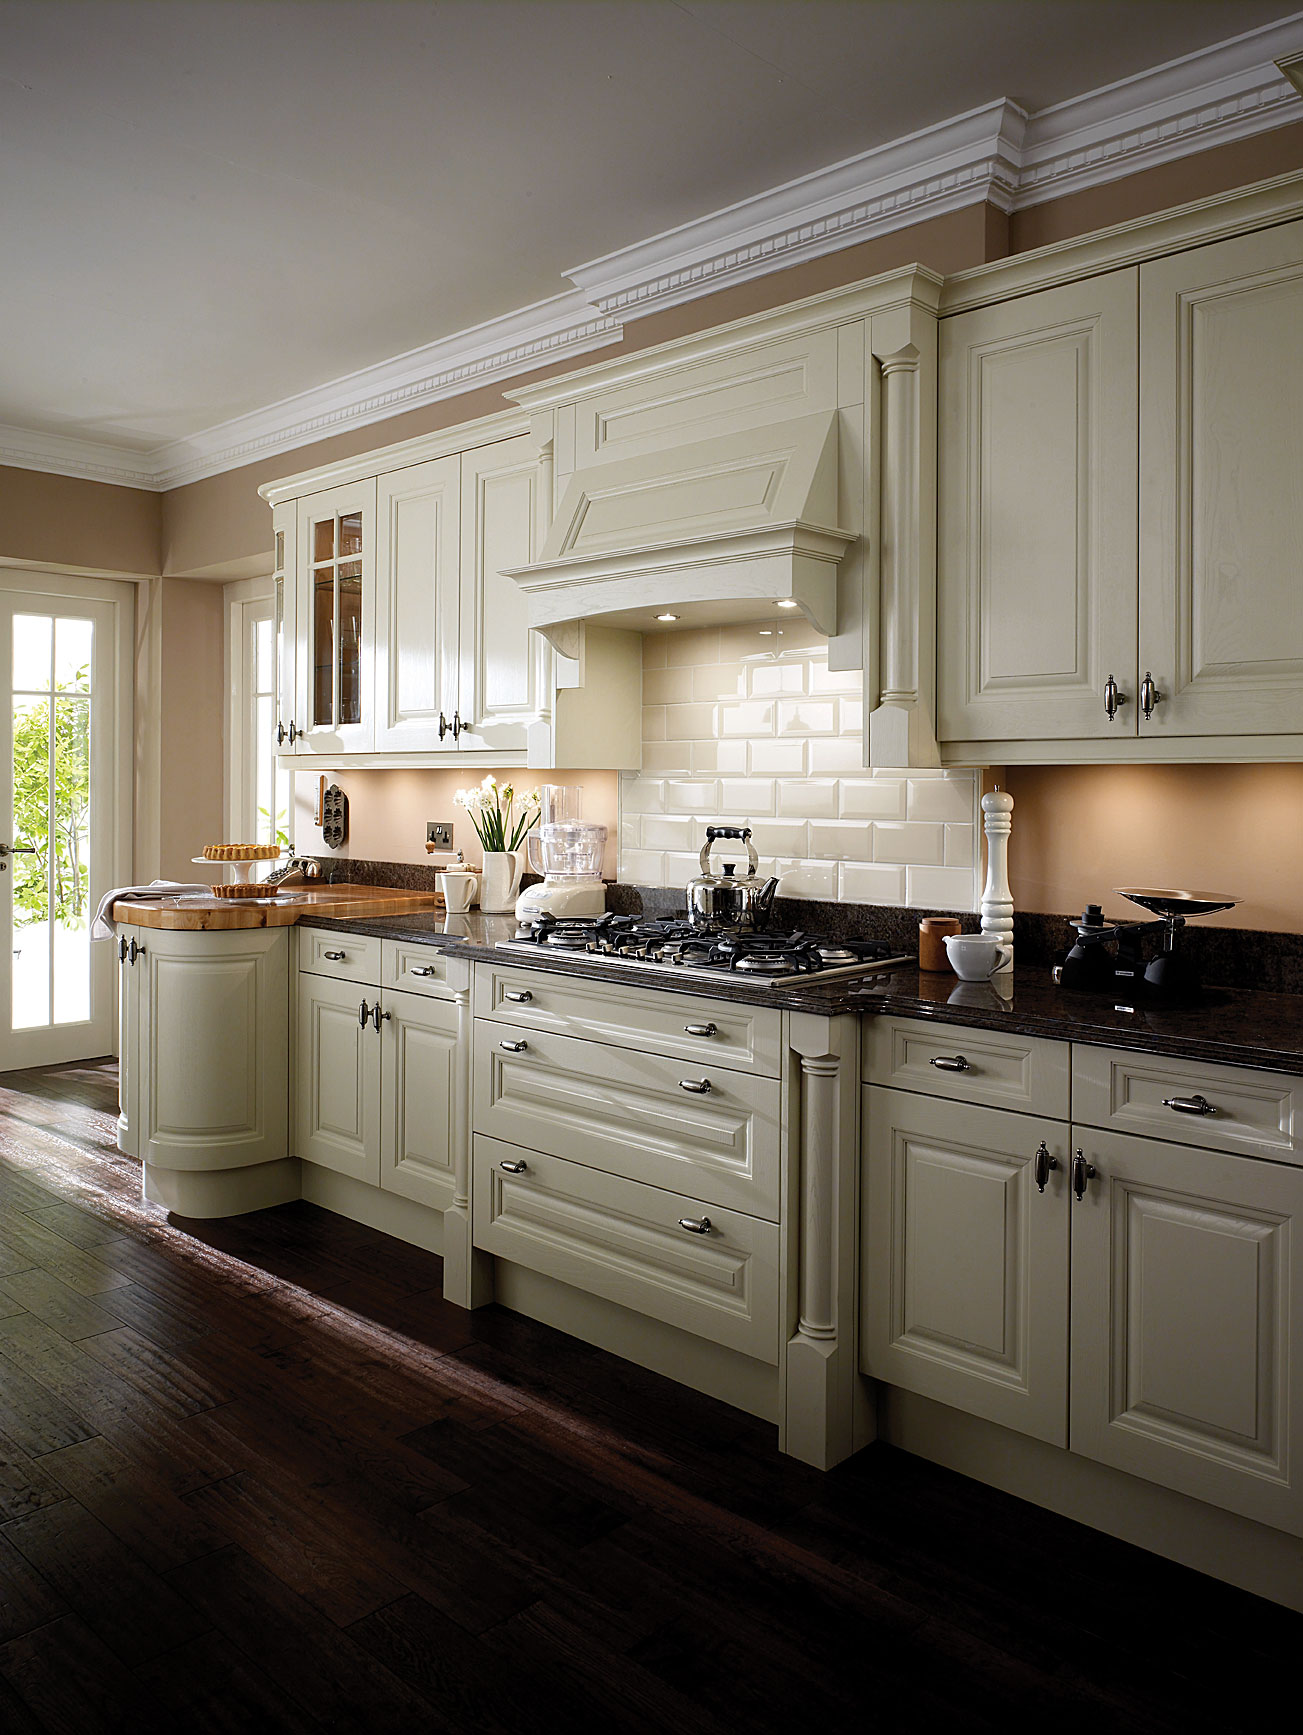 woodbank kitchens northern ireland based kitchen design company